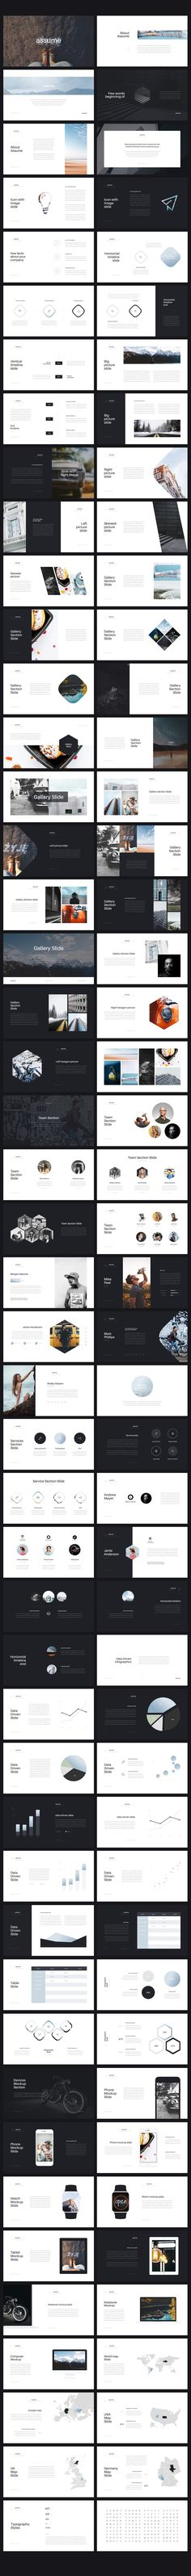 Assume Keynote Template by Entersge on @creativemarket